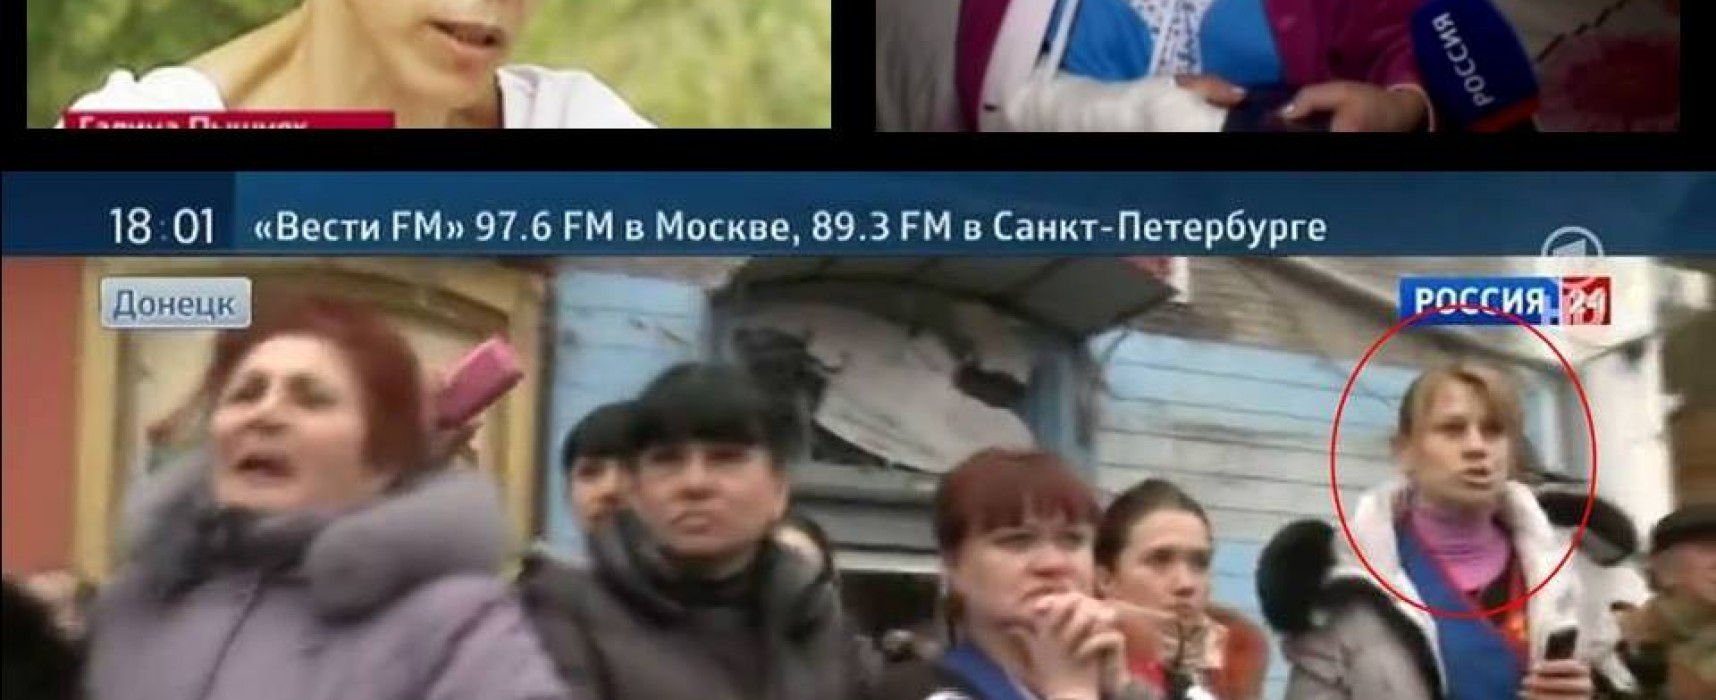 "Fake: Infamous Heroine of the ""Sloviansk Boy's Crucifixion"" Report Found Among the ""Victims"" of the Explosion in Donetsk"